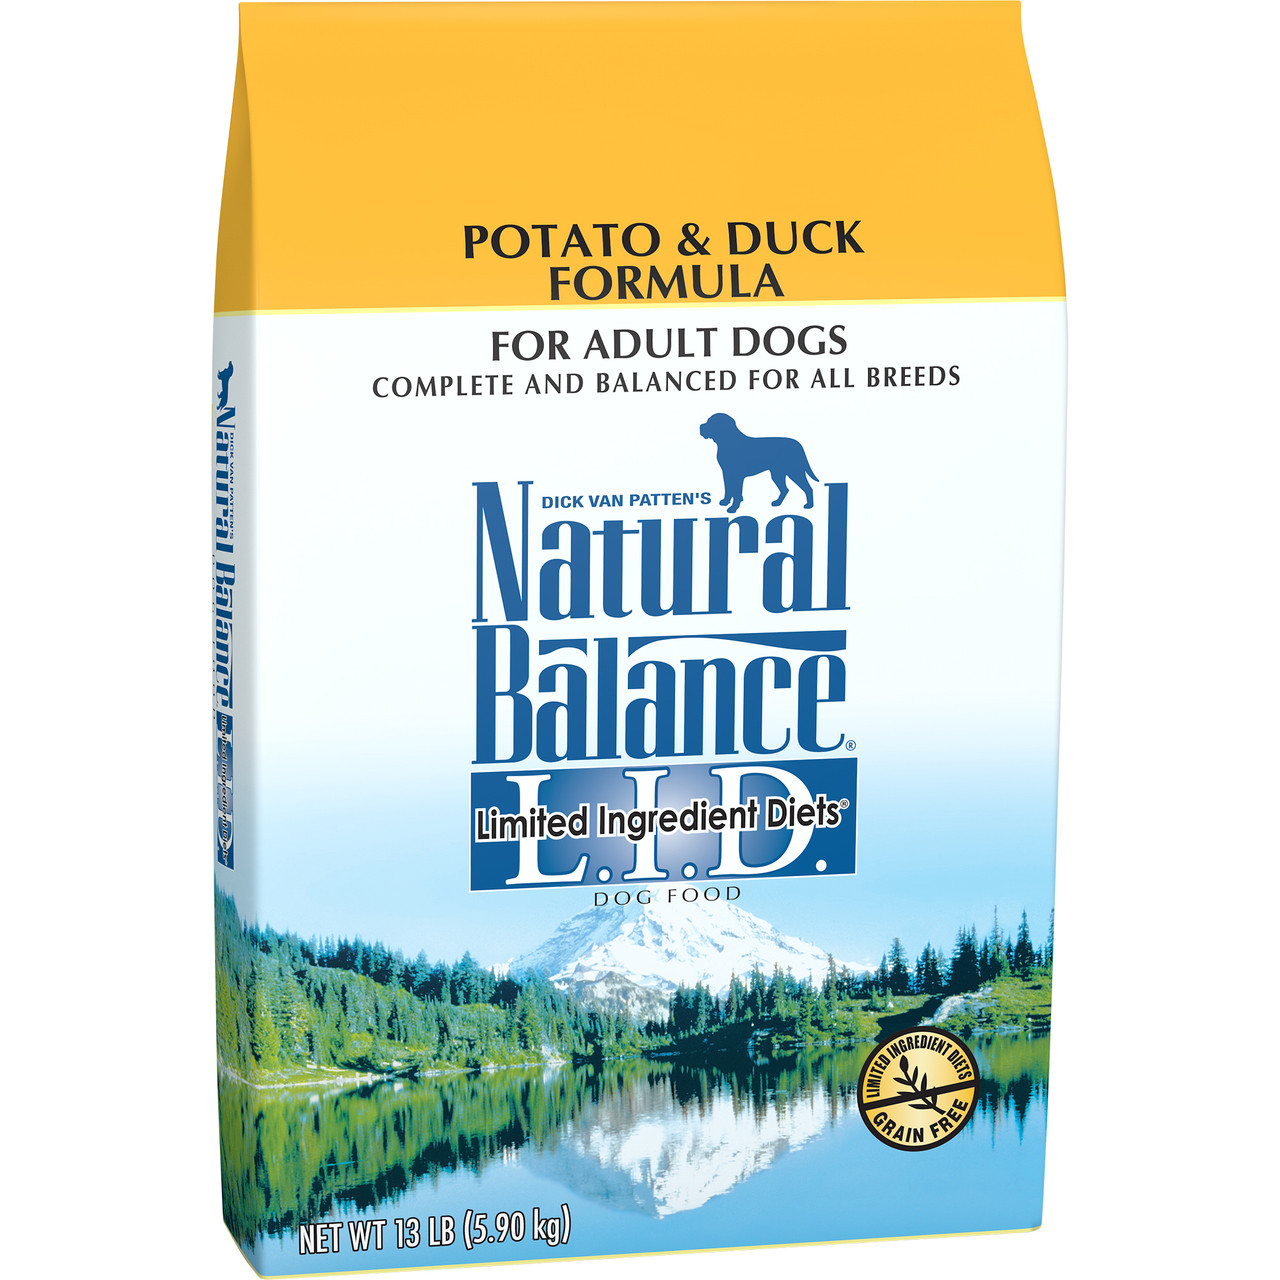 Natural Balance Limited Ingredient Diets Potato & Duck Formula Dry Dog Food